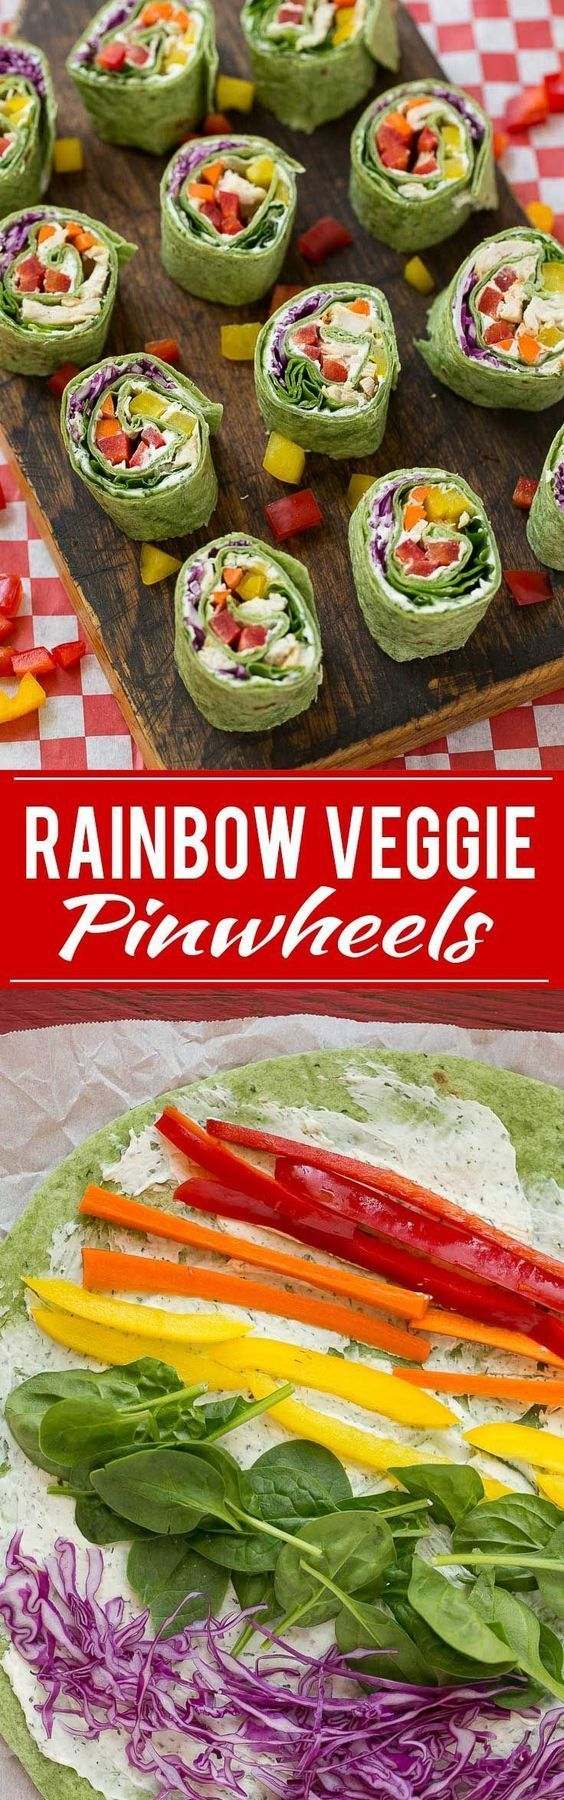 A rainbow of veggies and chicken are combined with ranch spread on a rolled tortilla to make healthy and delicious pinwheel sandwiches. *** Continue with the details at the image link. #Diabetes